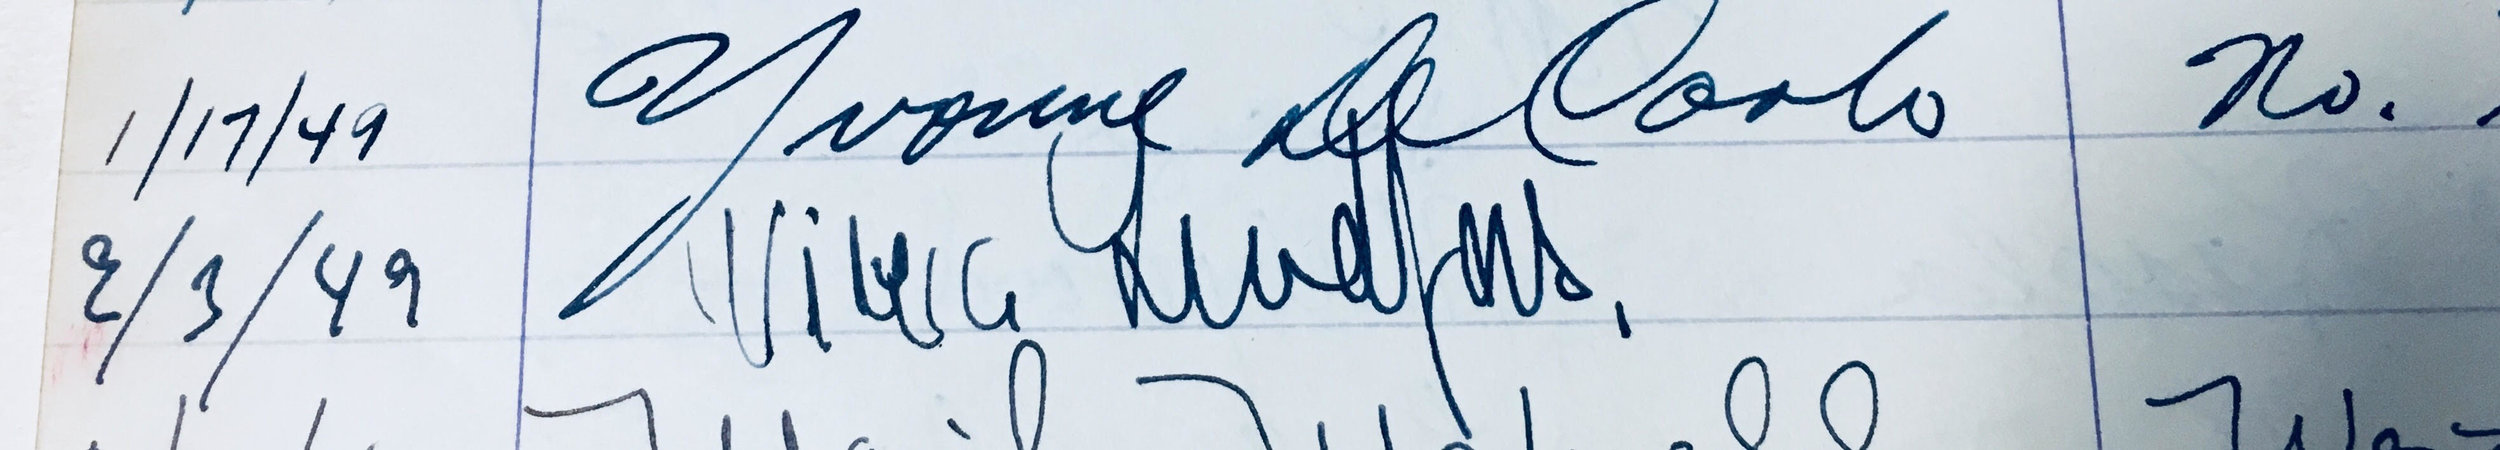 Viveca LIndfors' autograph in Joseff's guest book, dated February 3rd, 1949